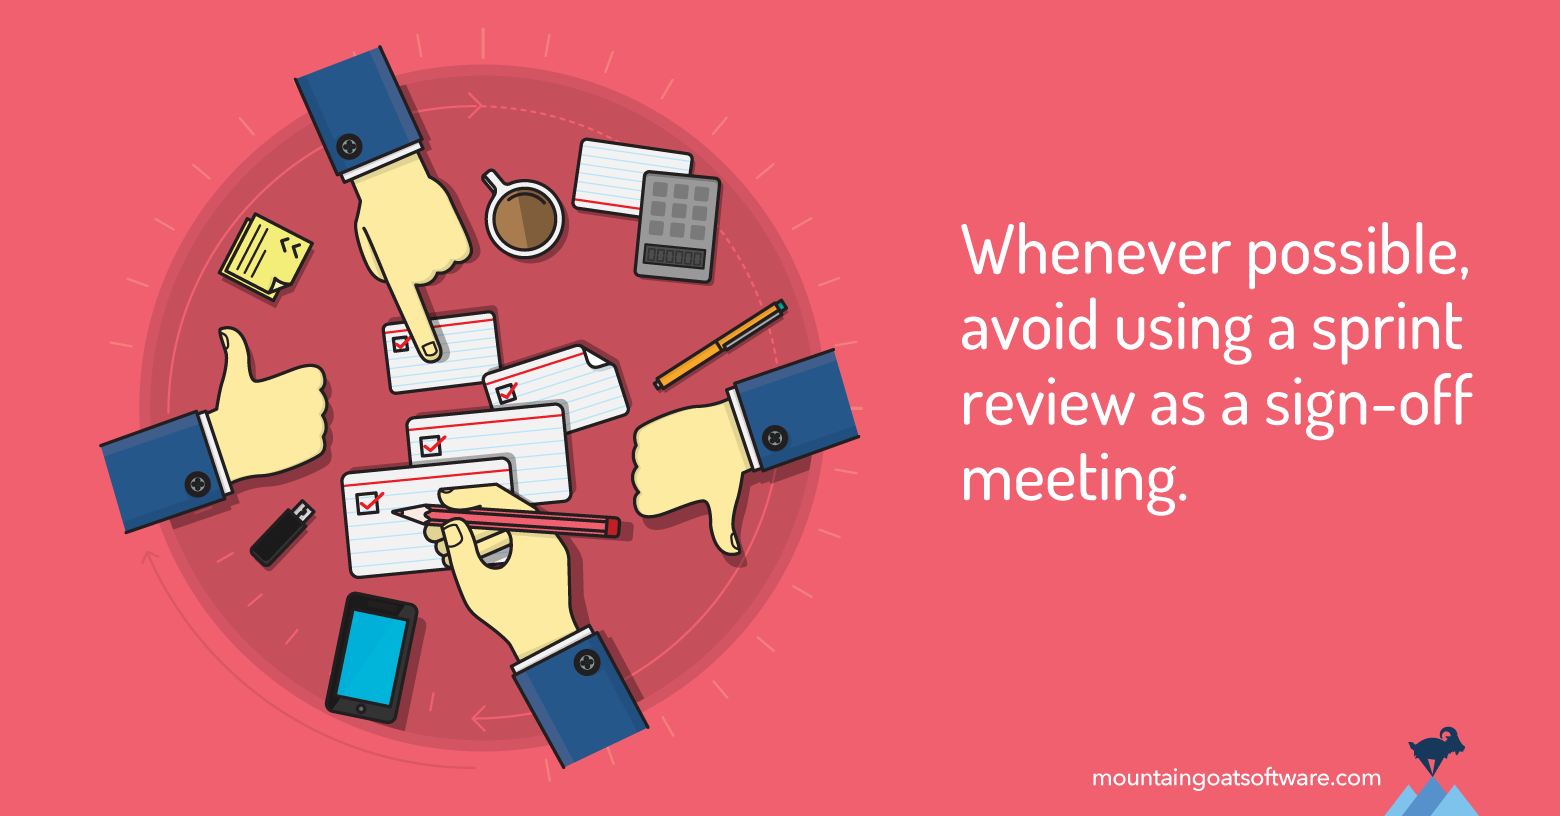 2016-09-27-the-sprint-review-as-a-sign-off-meeting-quote.png